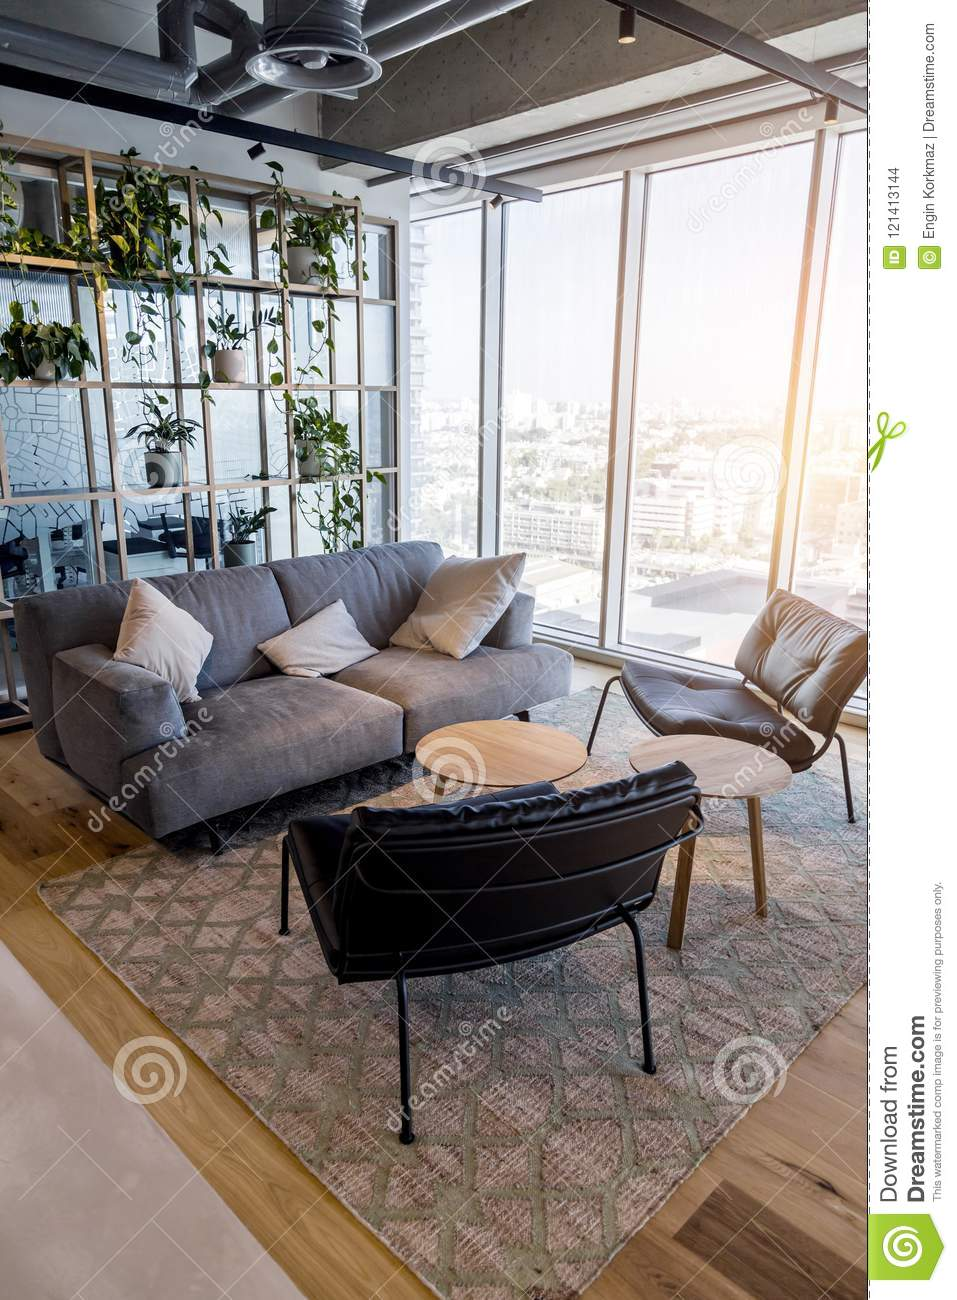 Google office environment Extravagant Tel Aviv Israel June 9 2018 Interior View Of Google Office In Tel Aviv Creative And Entertaining Environment Was Created For The Team Dreamstimecom Google Office Tel Aviv Israel Editorial Stock Image Image Of